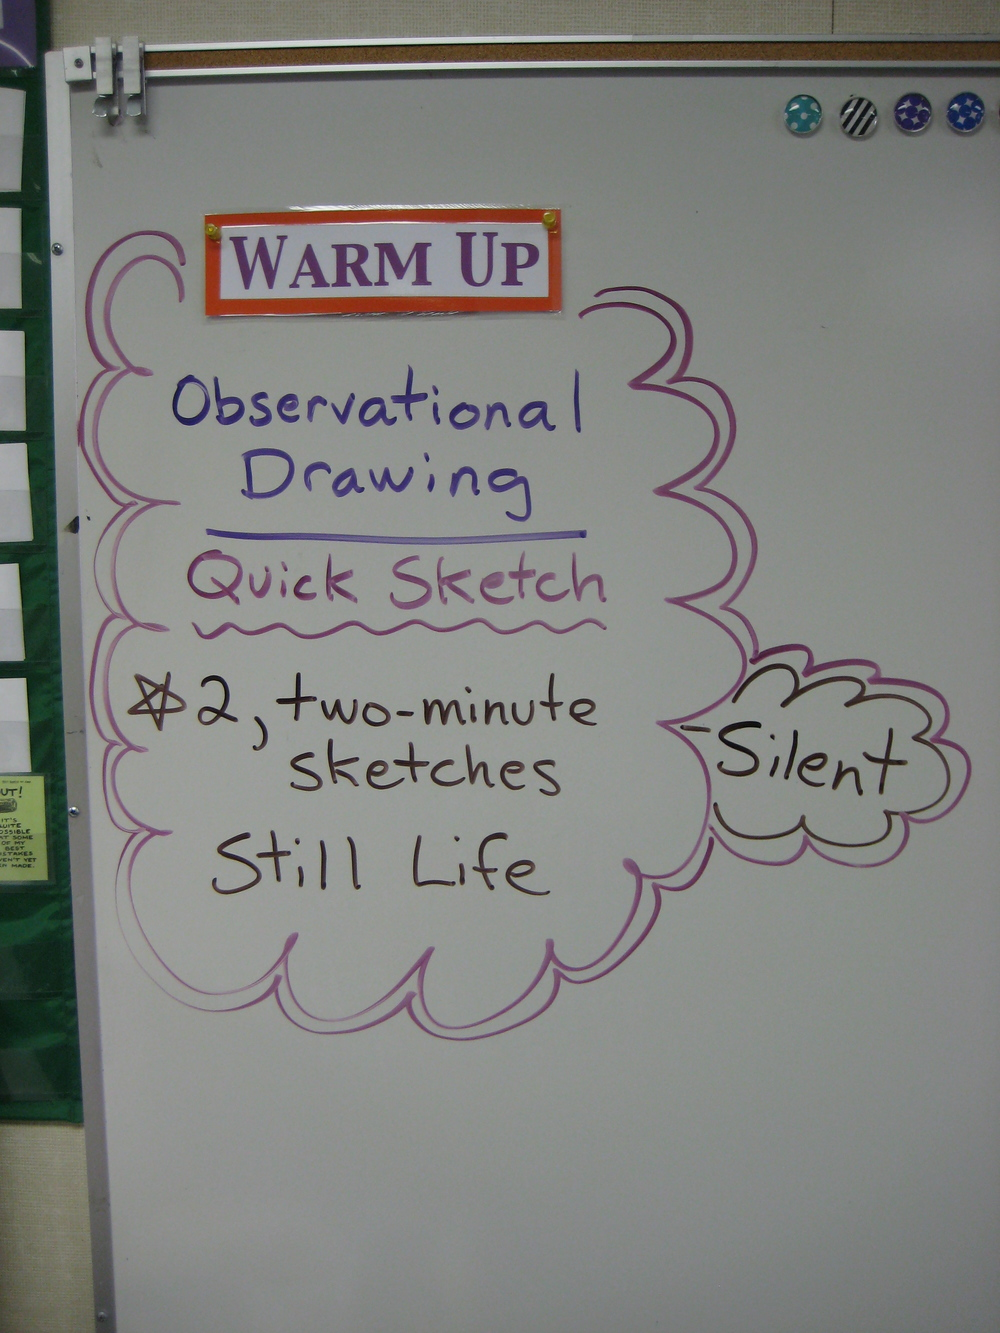 Warm Up assignment on the white board.